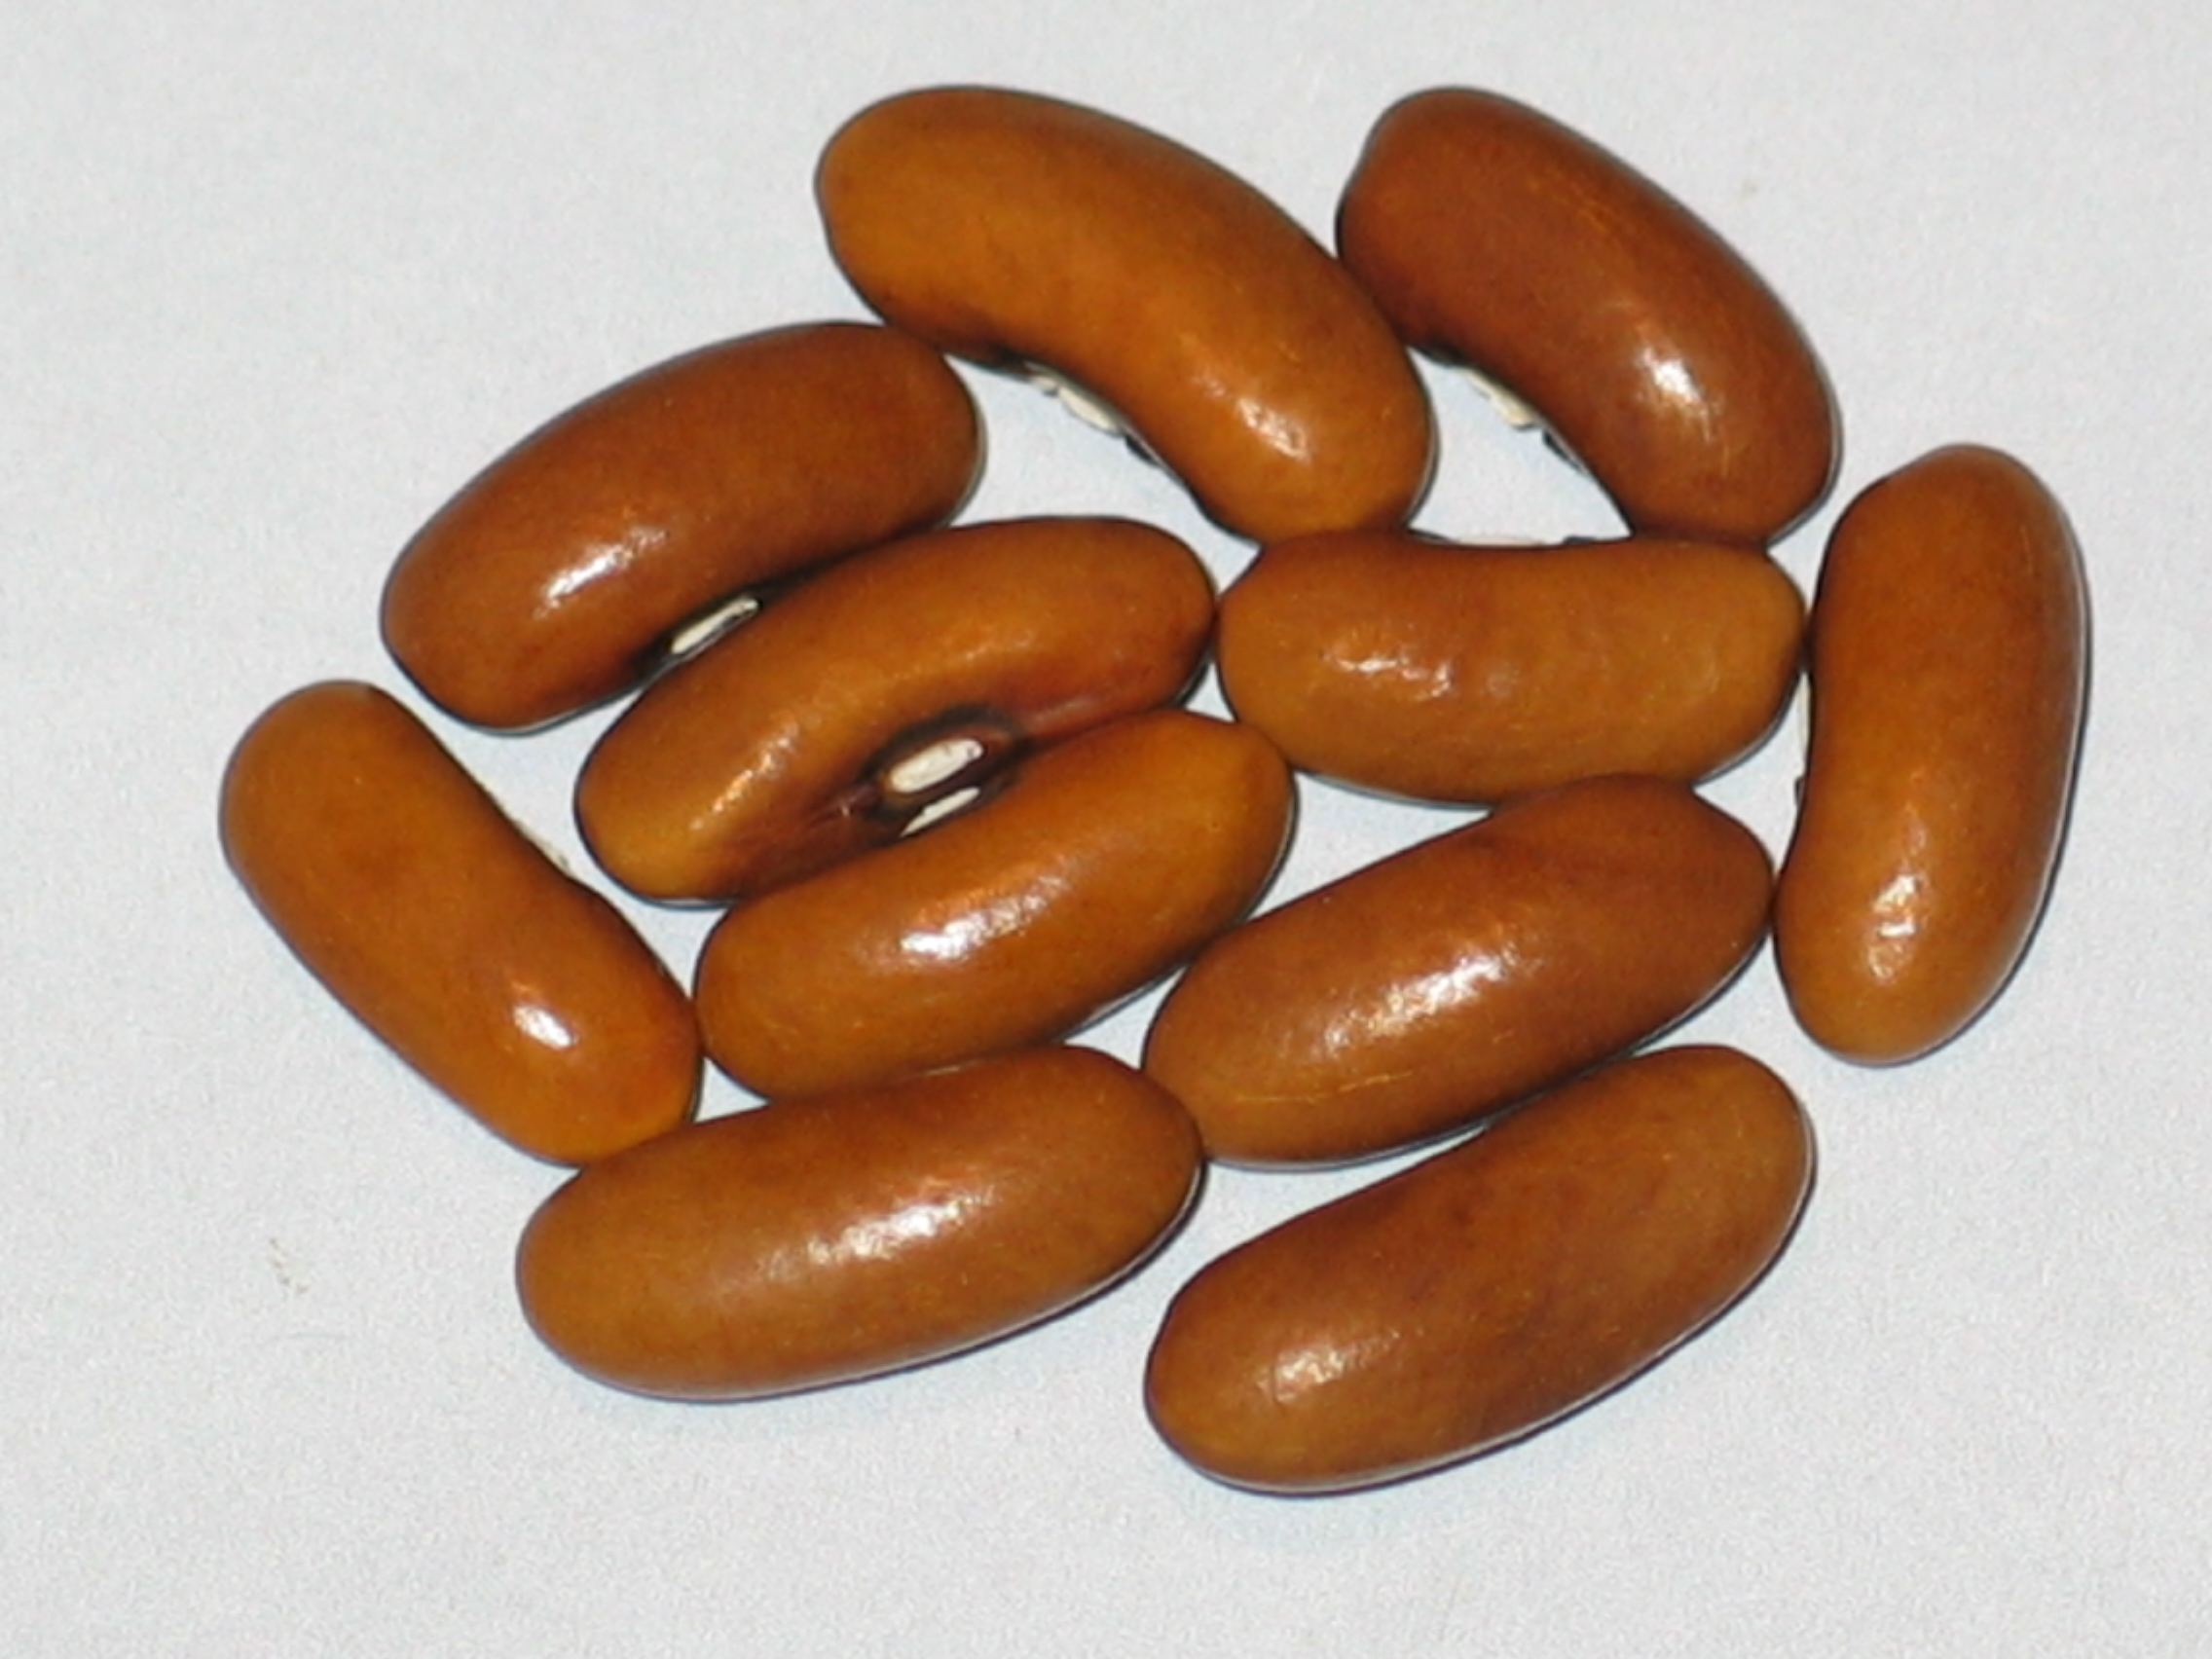 image of Kay Snap beans